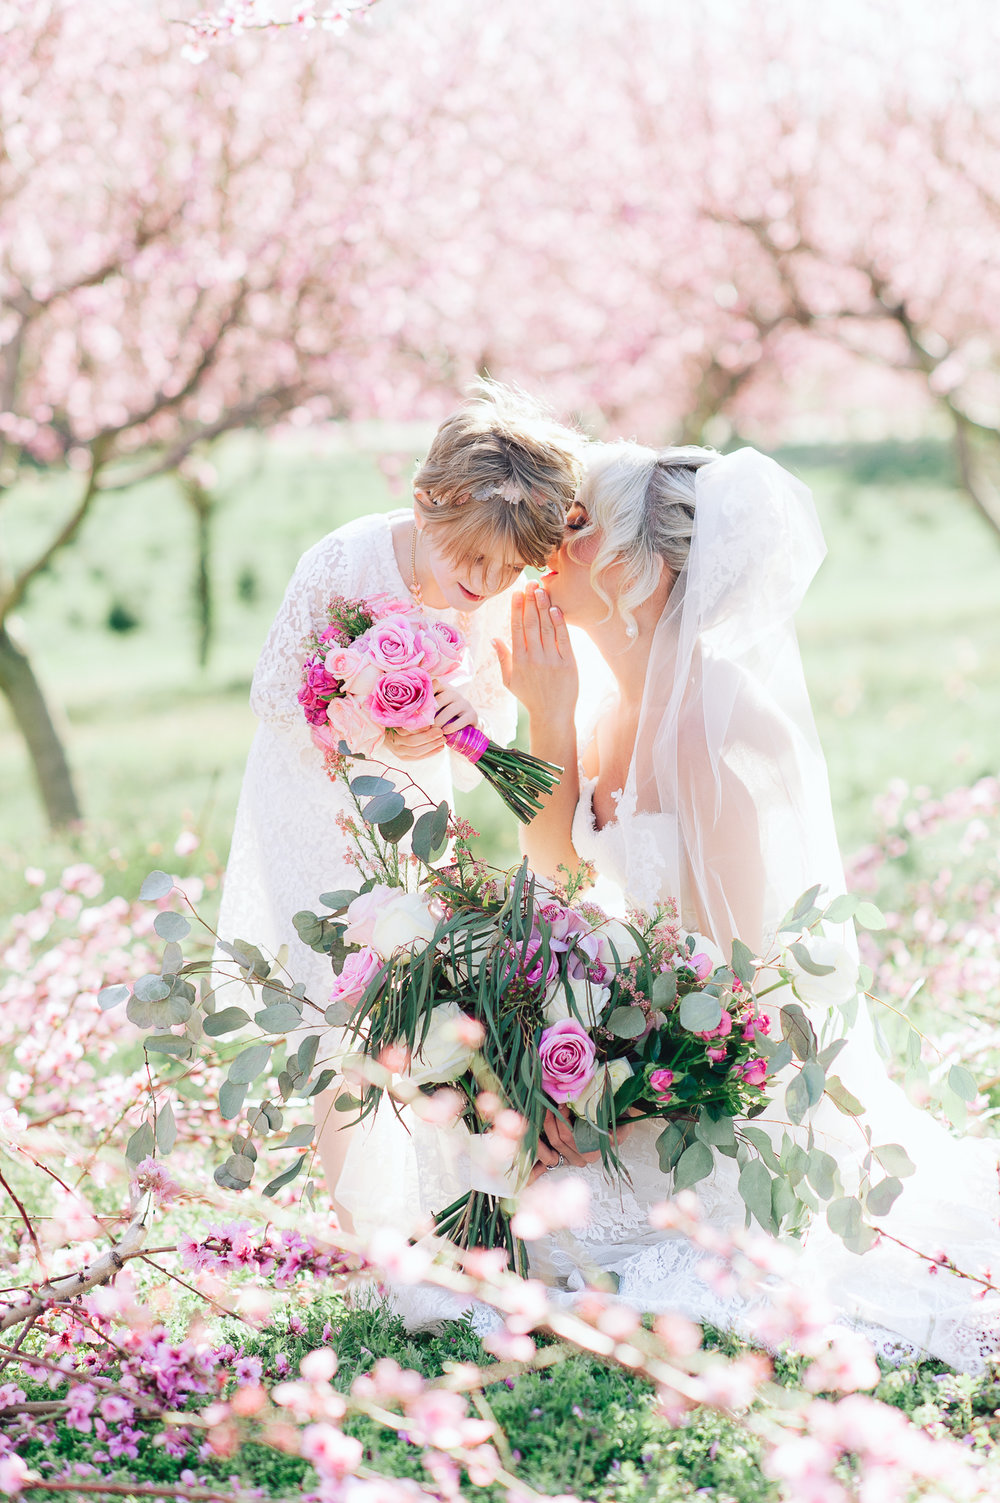 youseephotography_virginia_styledshoot_springwedding_blossoms  (44).jpg